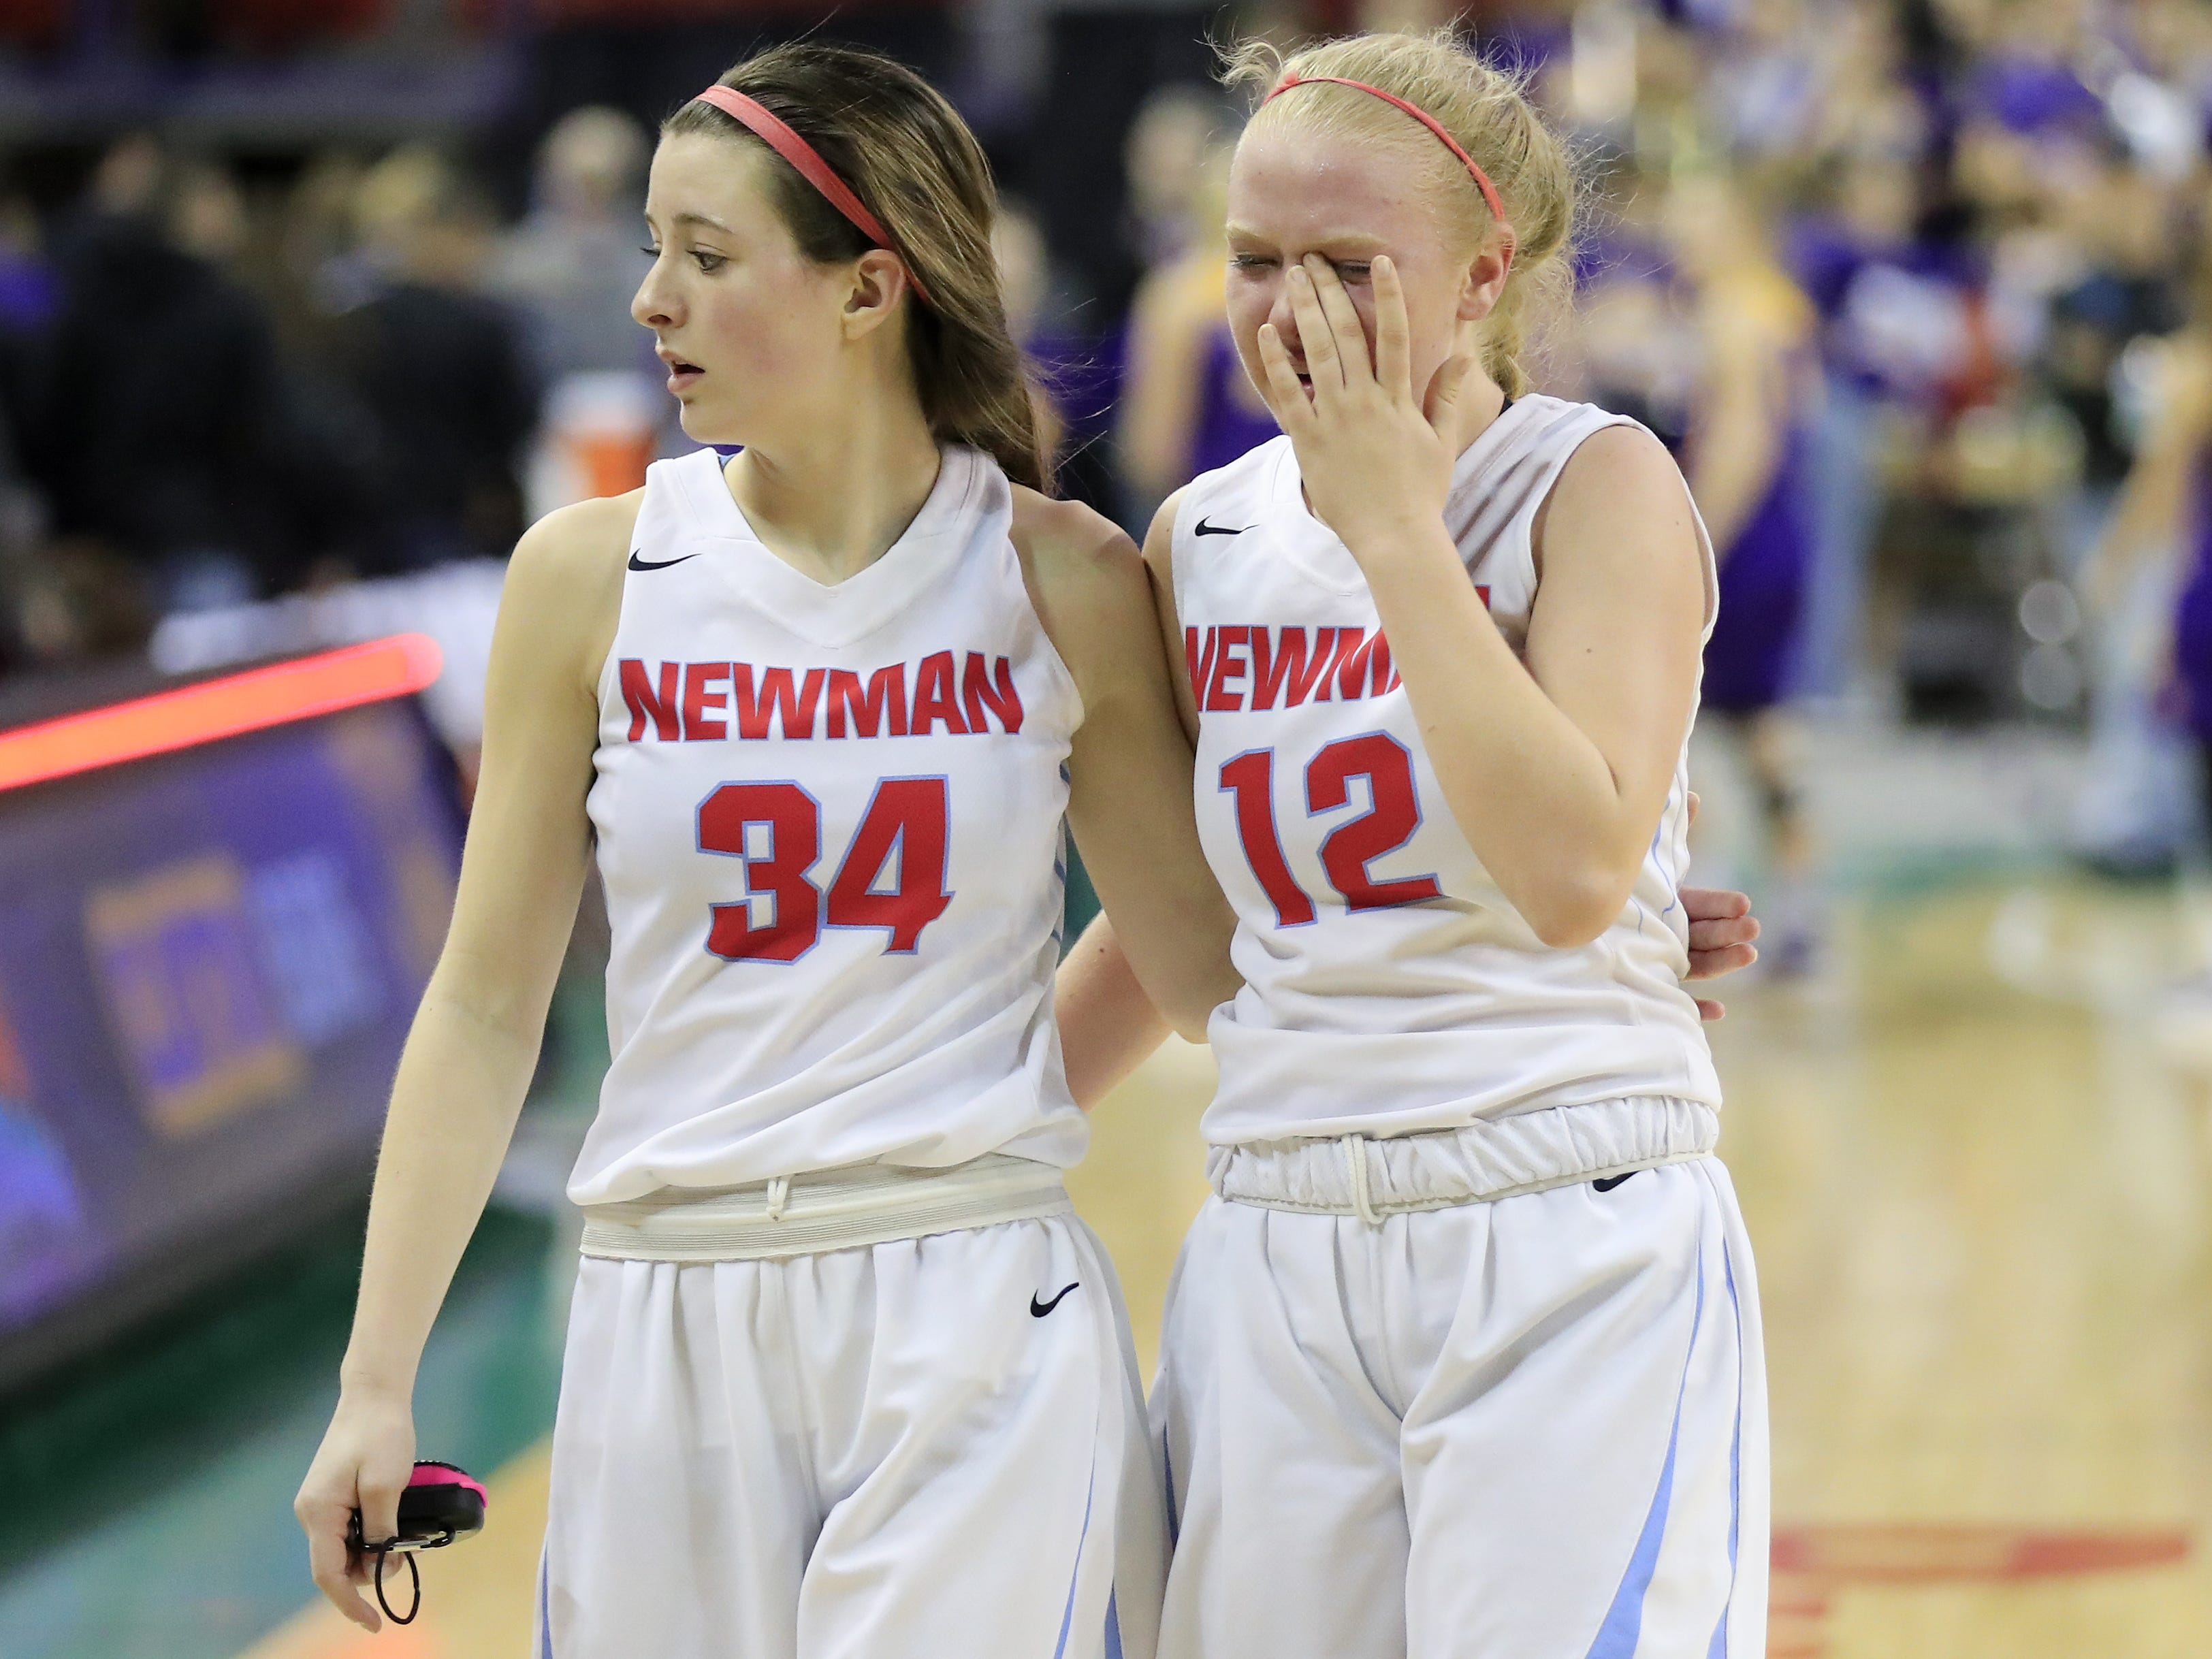 Wausau Newman Catholic's Julia Seidel (34) and Mackenzie Krach (12) walk off the court after the Cardinals lost to Clayton in a Division 5 semifinal at the WIAA state girls basketball tournament at the Resch Center on Friday, March 8, 2019 in Ashwaubenon, Wis. Adam Wesley/USA TODAY NETWORK-Wisconsin